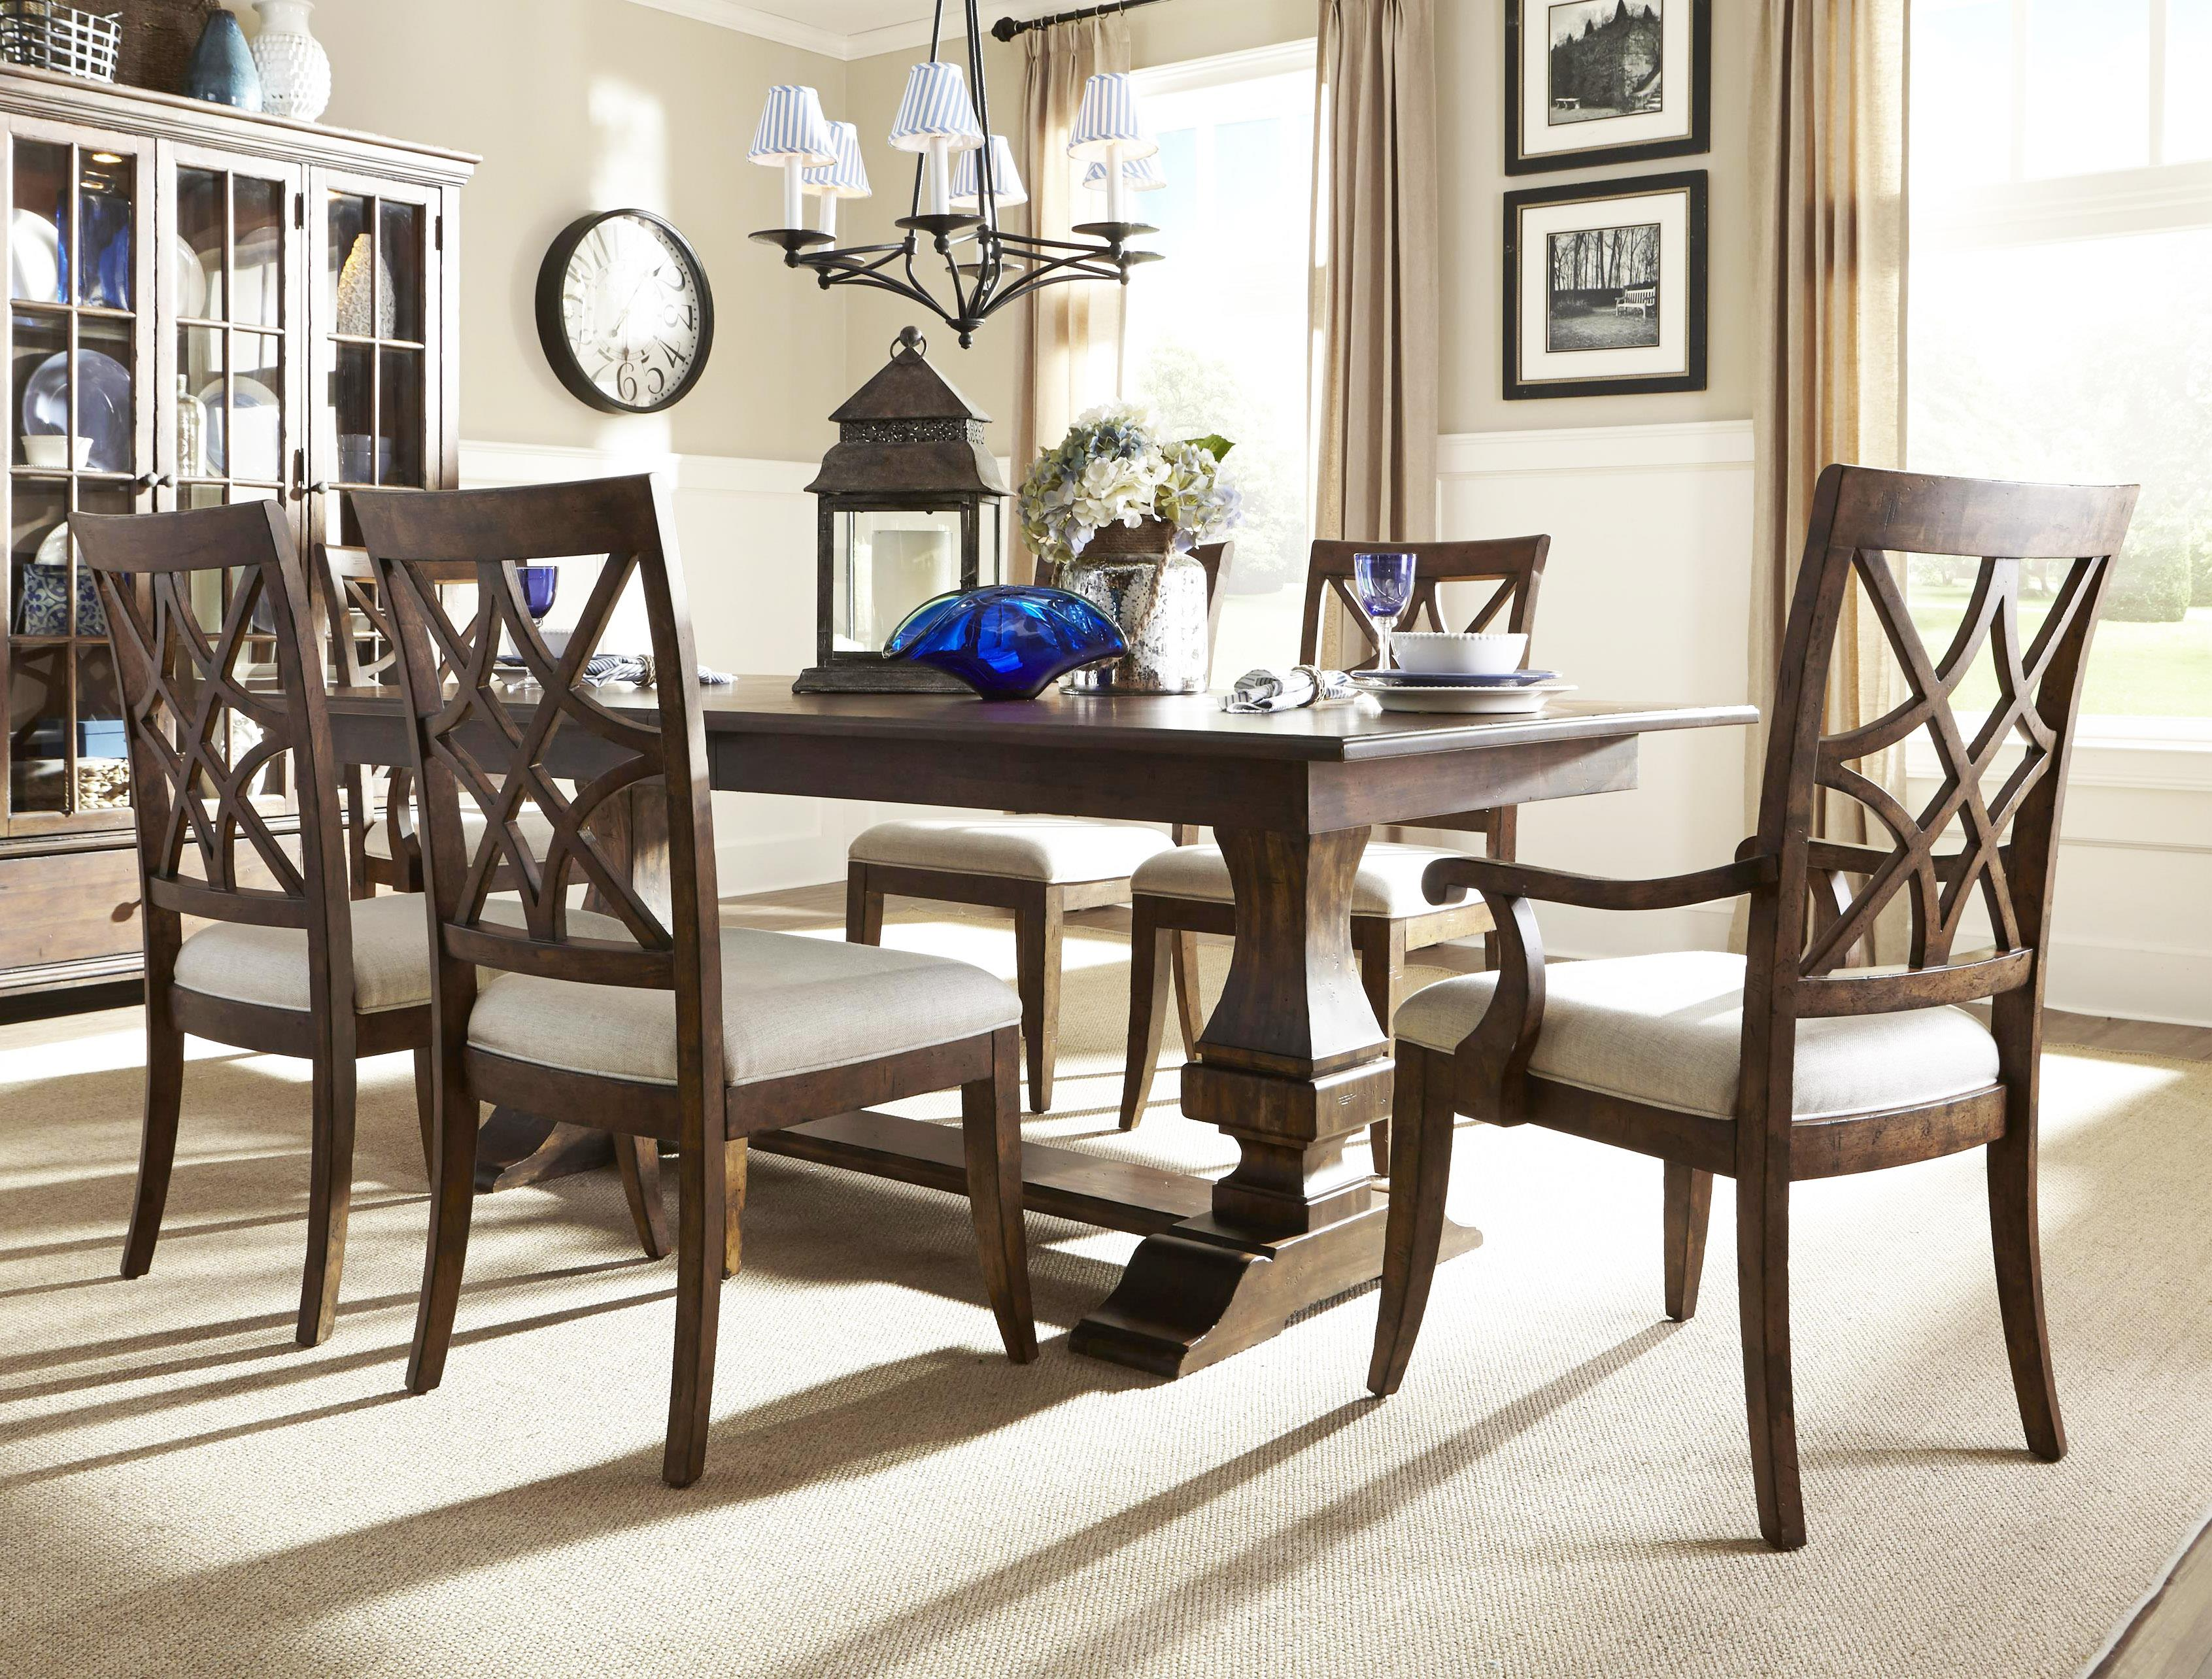 Trisha yearwood home collection by klaussner trisha yearwood home 5 piece dining set ruby Show home furniture hours